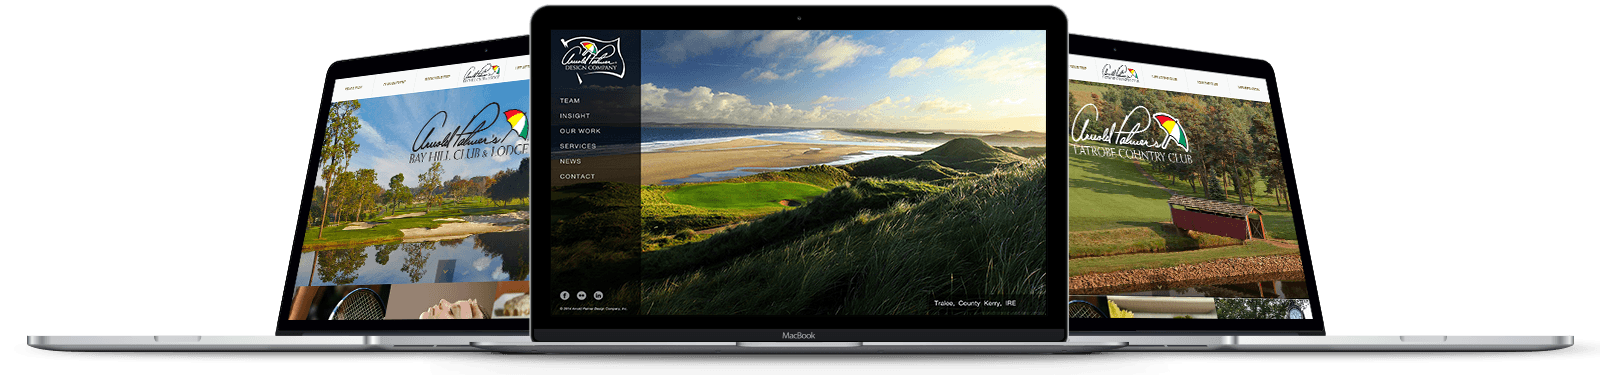 arnoldpalmer-casestudy-new-site-designs